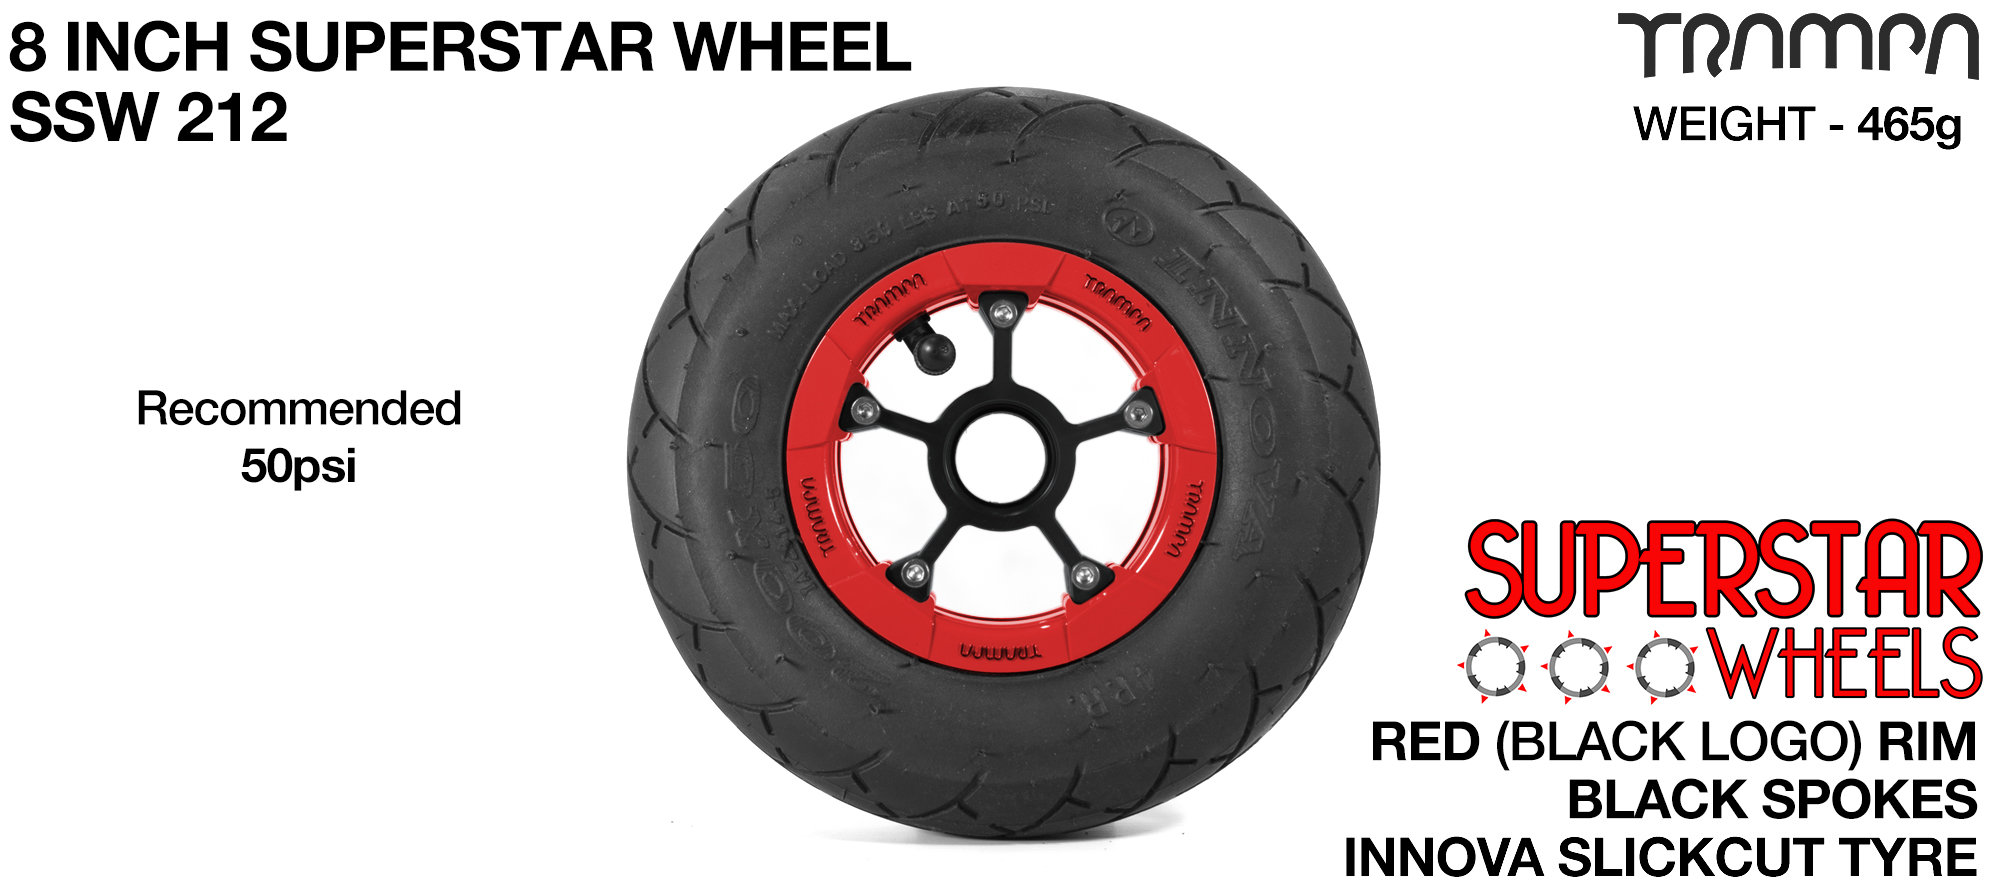 Superstar 8 inch wheels - Red Gloss Black Logo Superstar Rim with Black Anodised spokes & BLACK SLICKCUT 8 inch Tyre